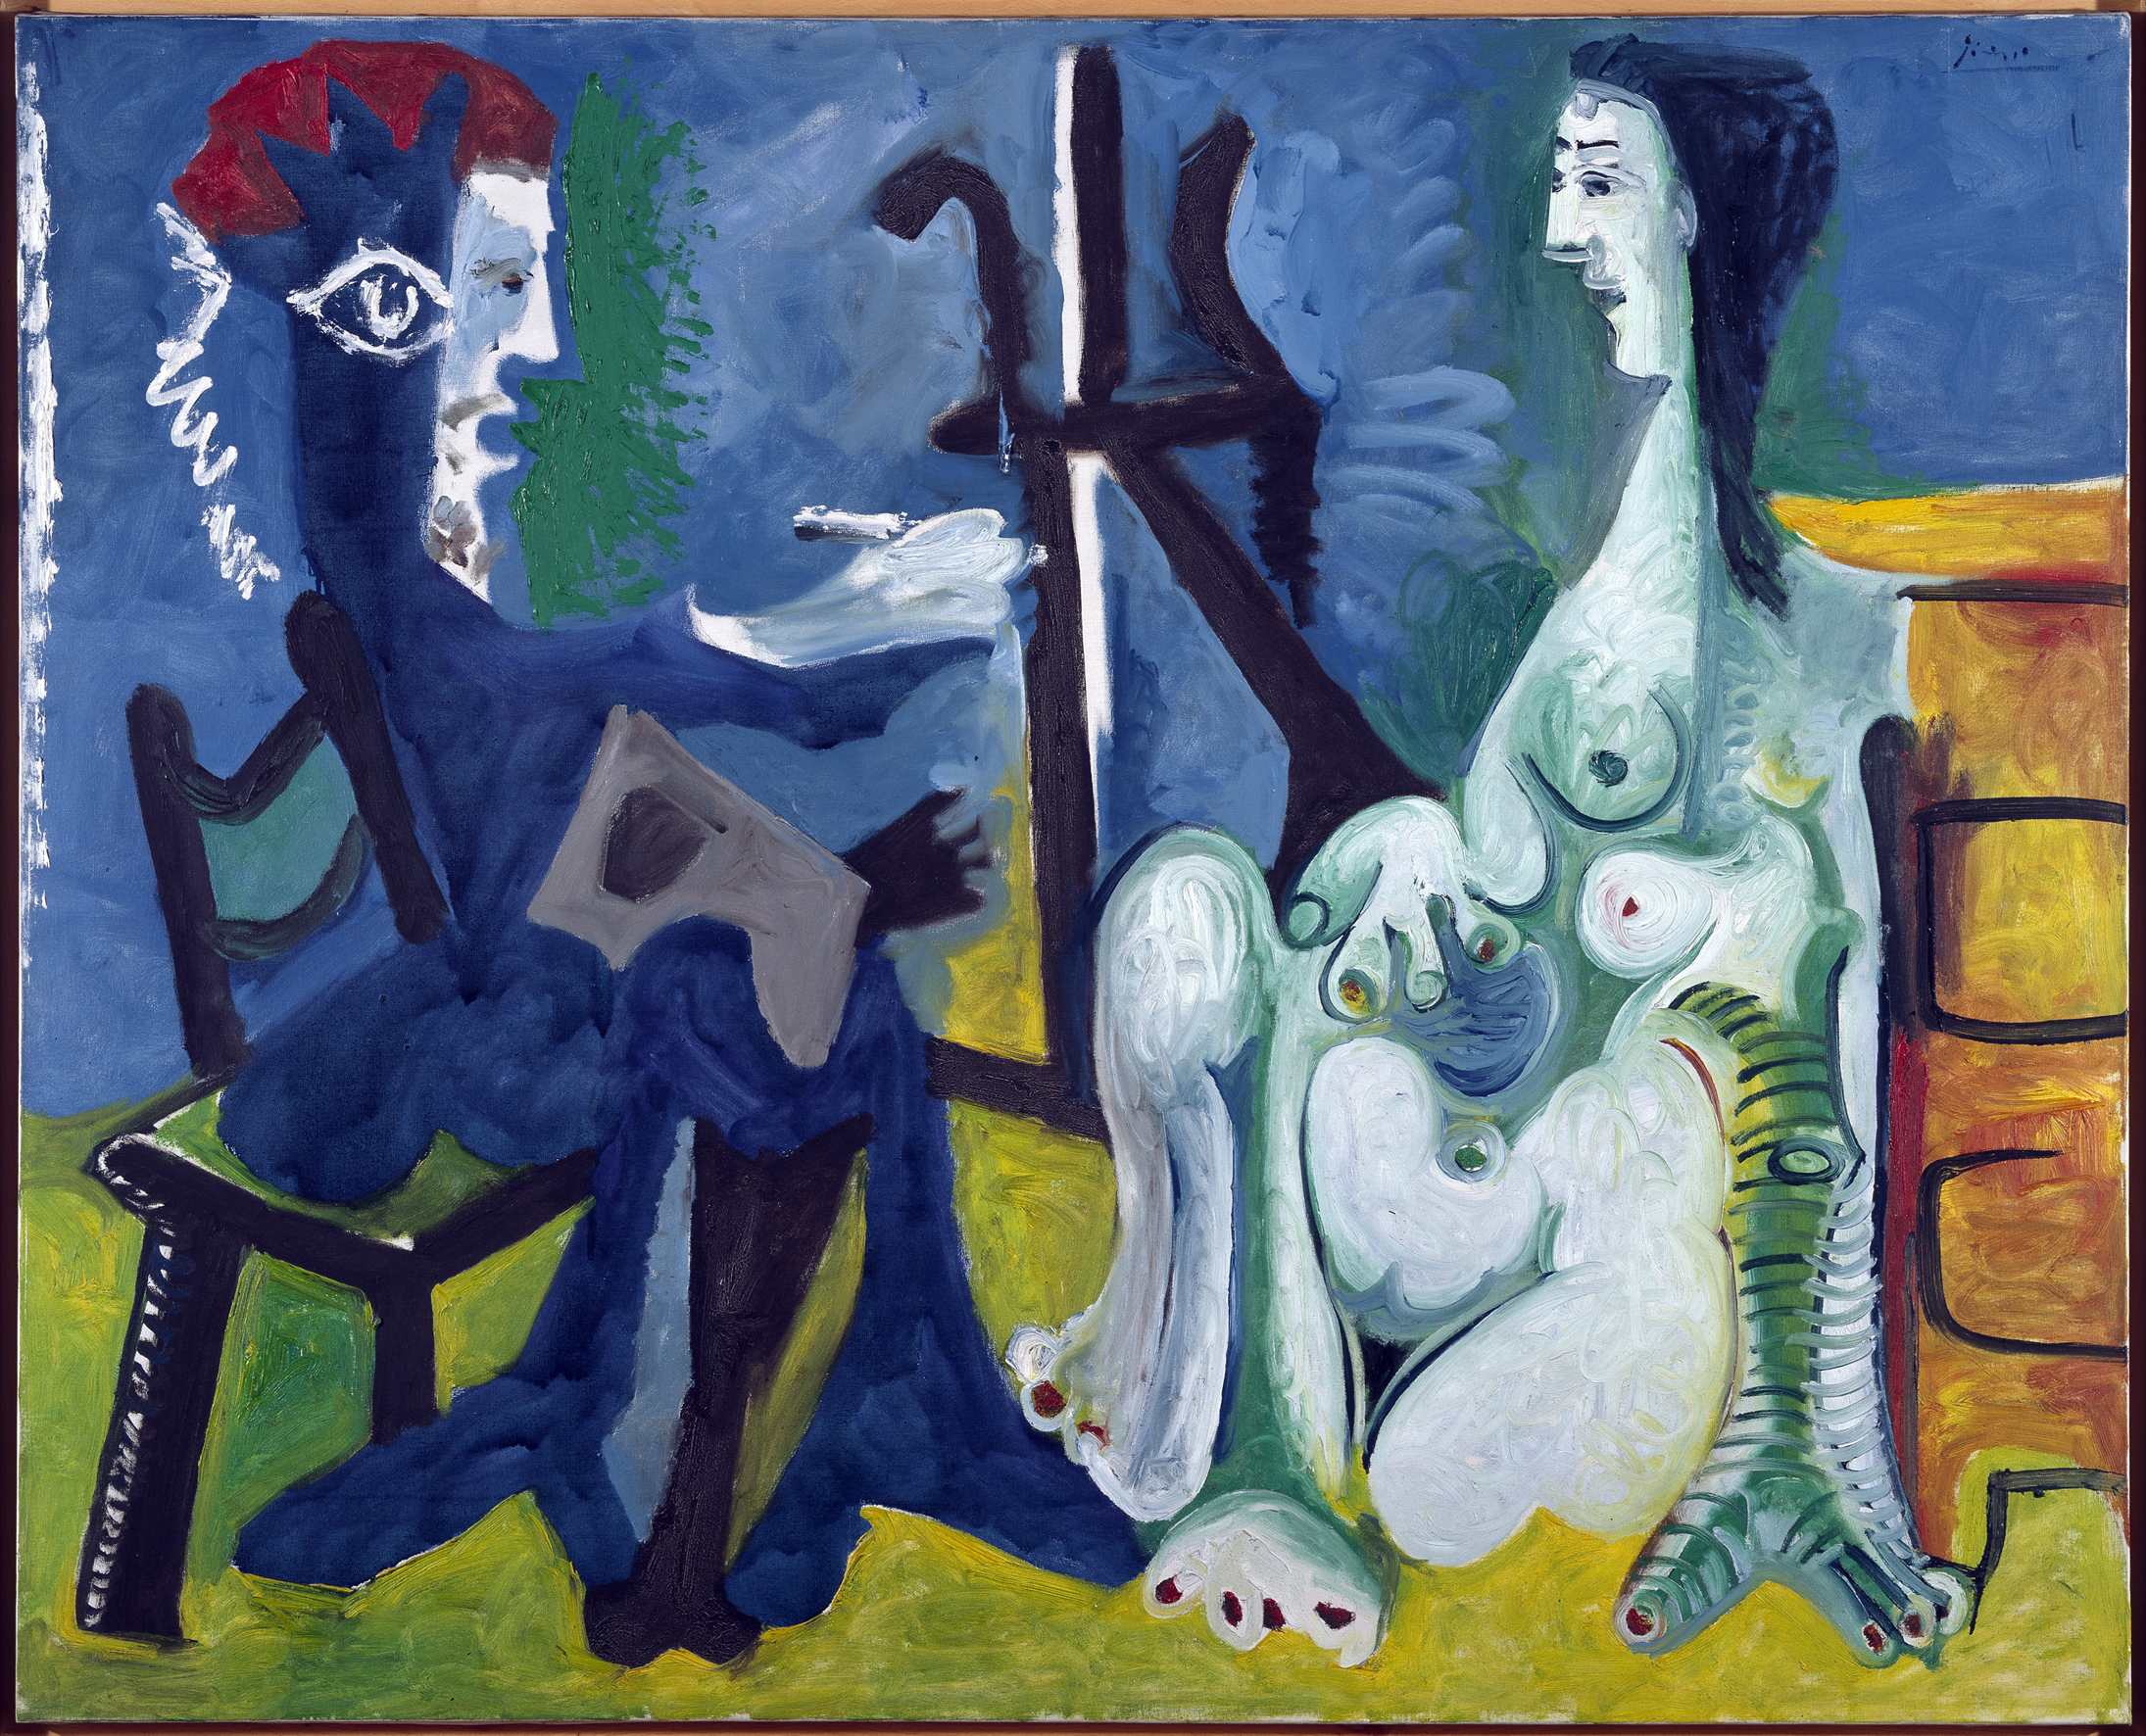 Picasso, The painter and The Model. Museo ANcional Centro de Arte Reina Sofia collection, Madrid.